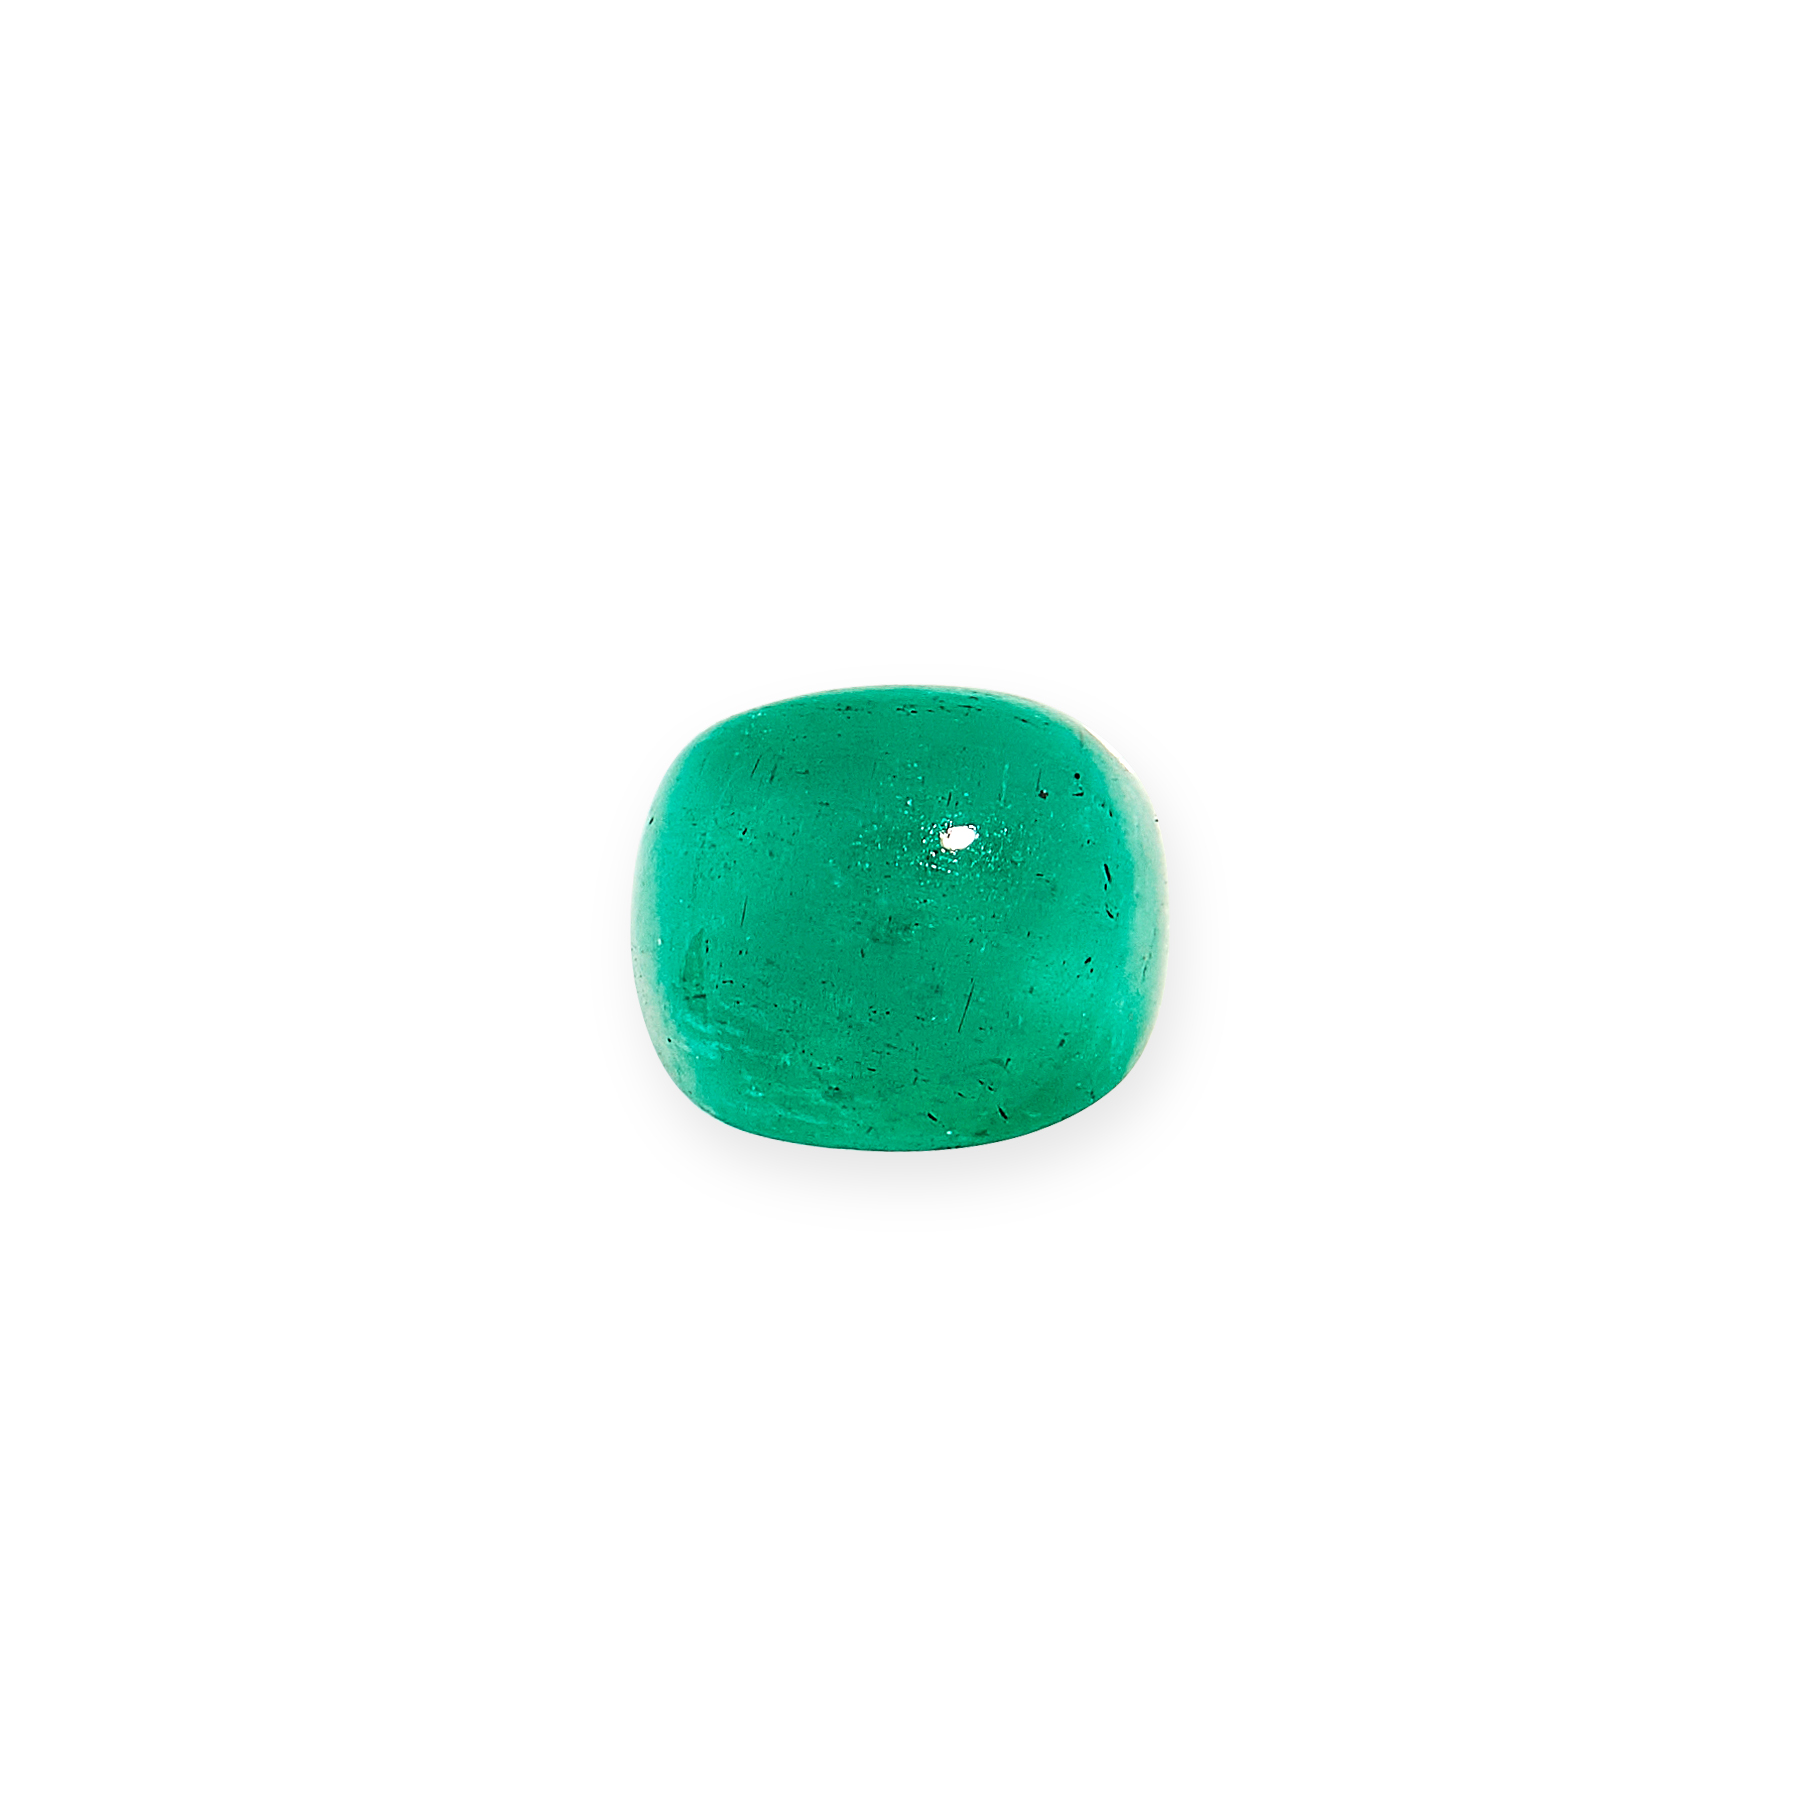 UNMOUNTED EMERALD of 1.49 carats, cabochon cut.